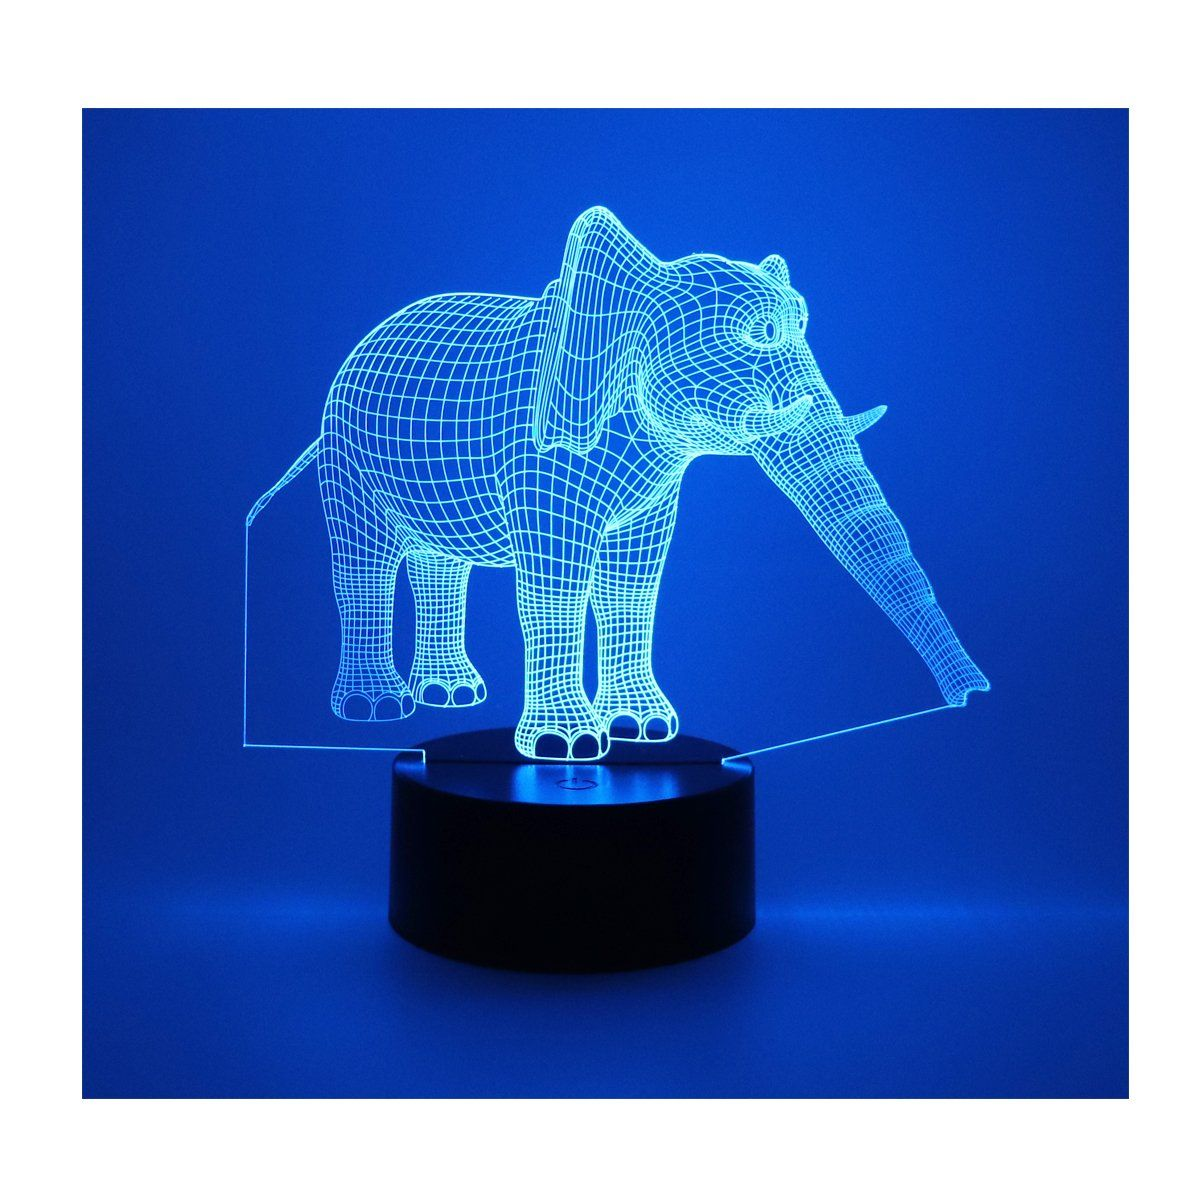 Hguangs Elephant Shape Night Lamp 3d Lamp 3d Optical Illusion Night Light Desk Table Light 7 Colors Changing Touch Light Table Night Lamps 3d Optical Illusions